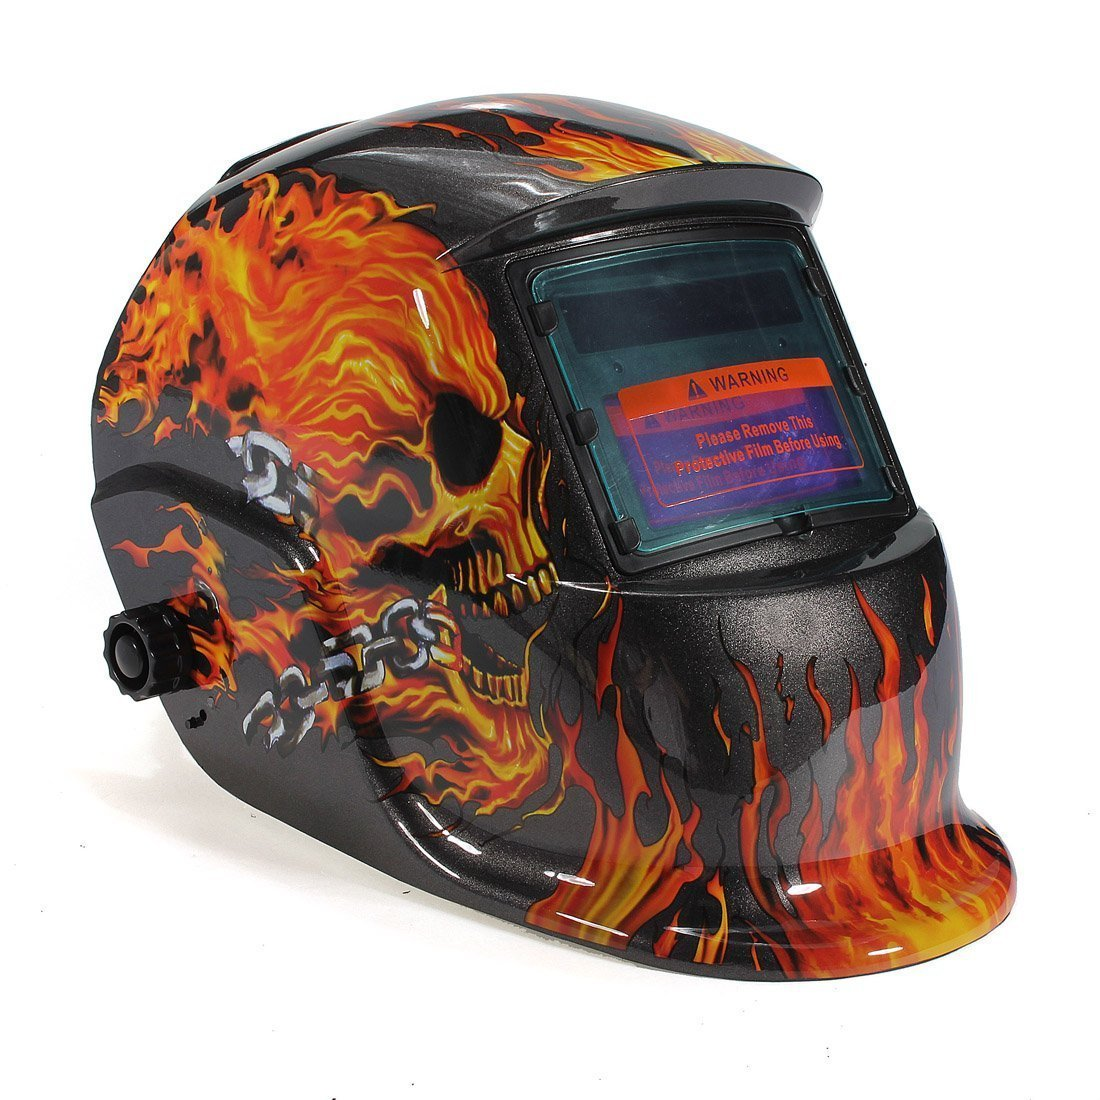 Top 10 Welding Helmets in 2019 Review